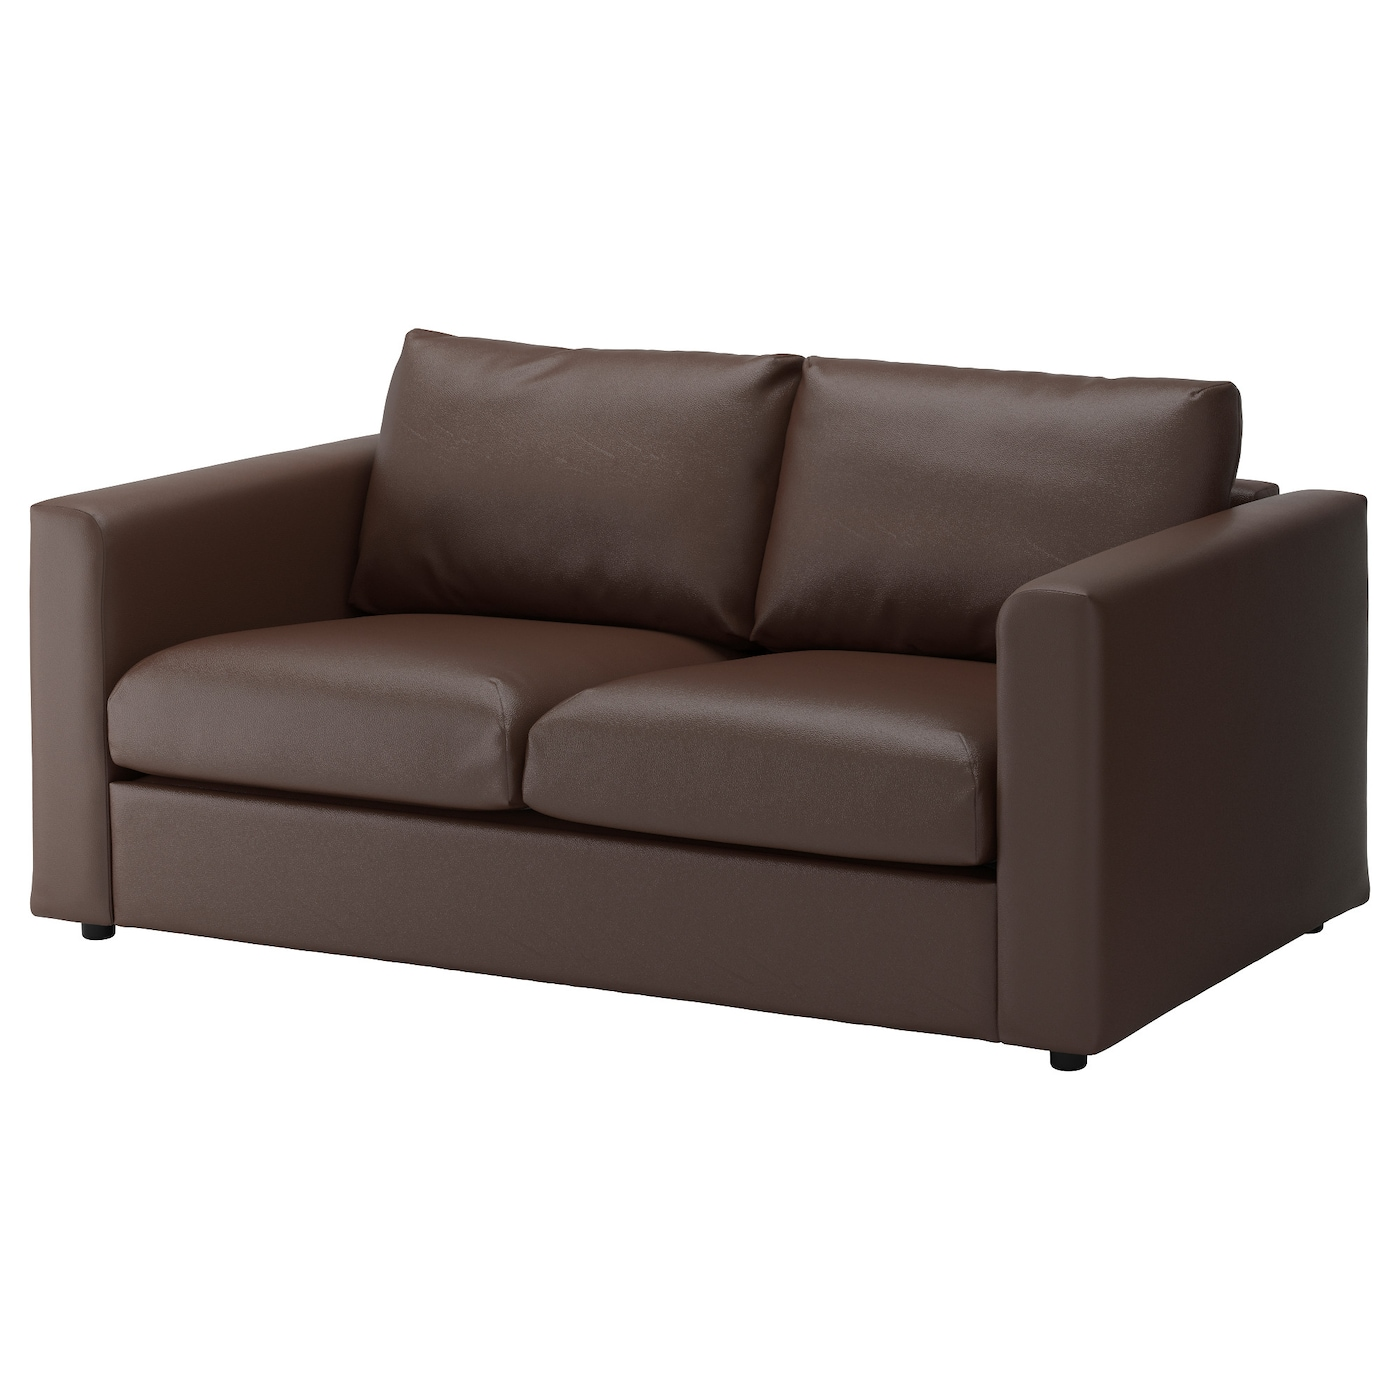 2 sofa modern 2 seater sofas quality from boconcept thesofa for 3 on a couch